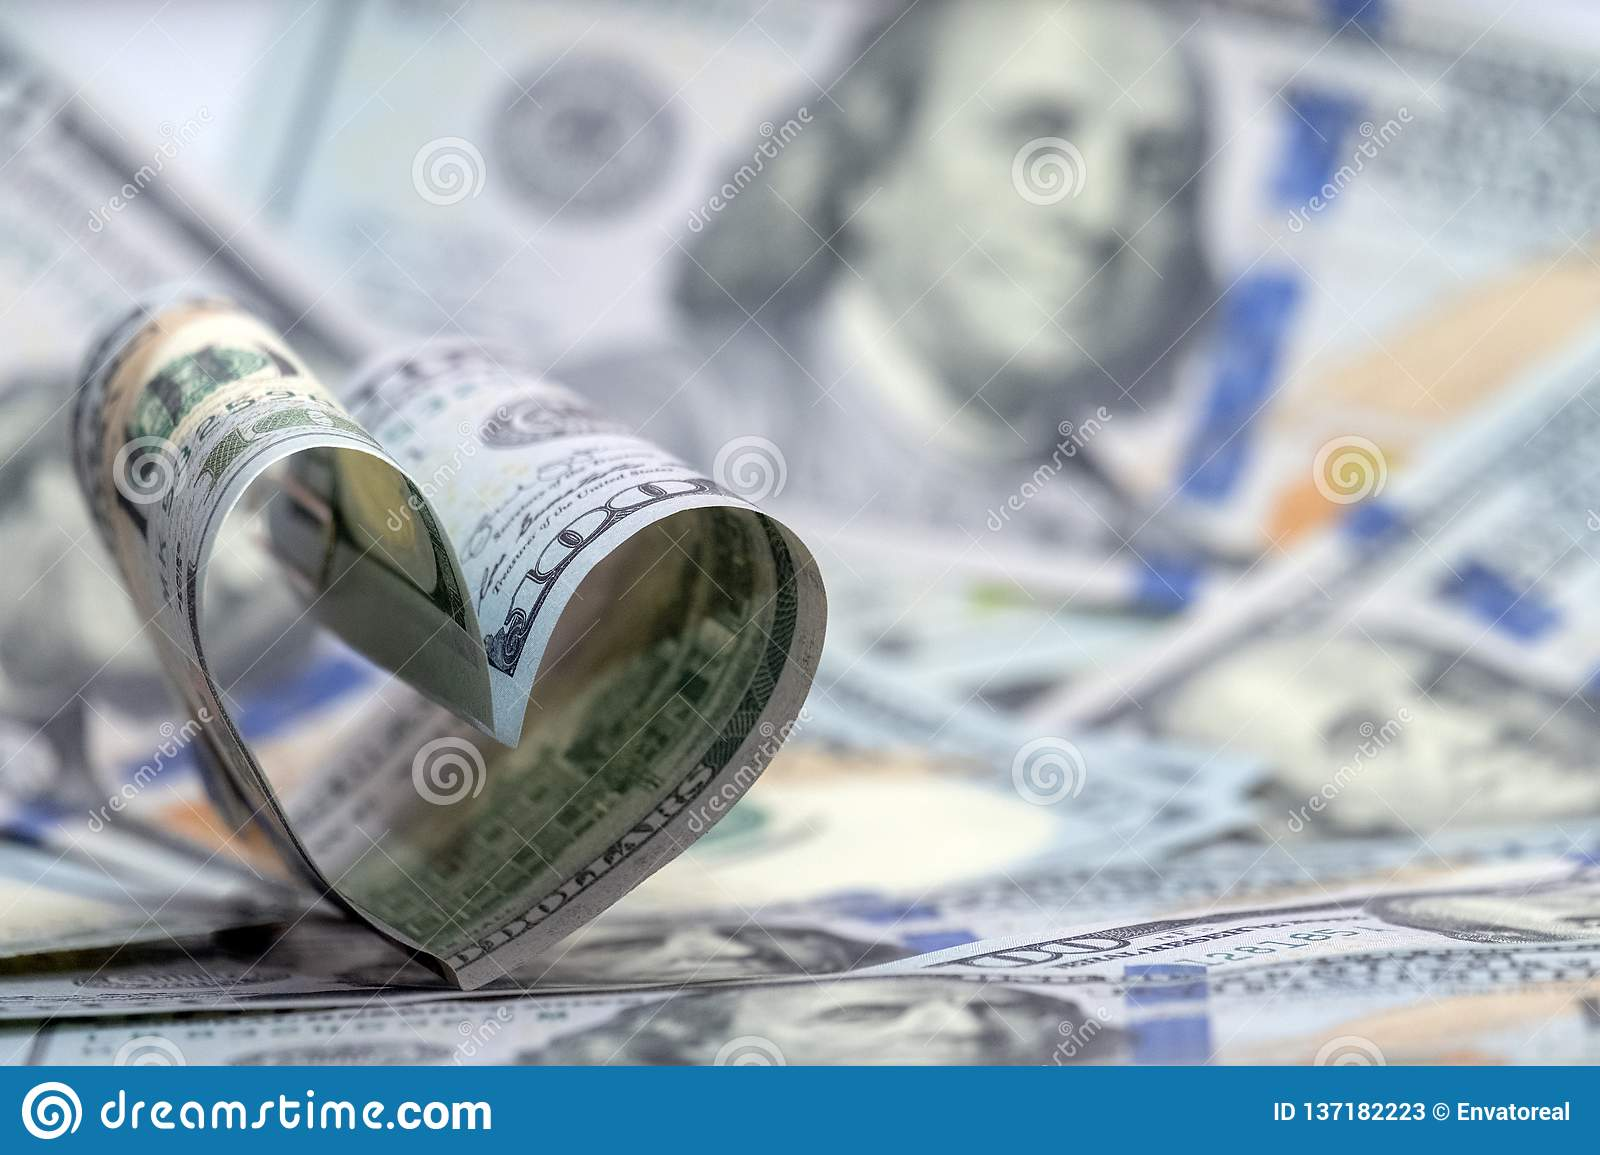 Hundred dollar banknote of usa in the shape of a heart. Money background. Concept financial love and a gift for Valentine`s Day.